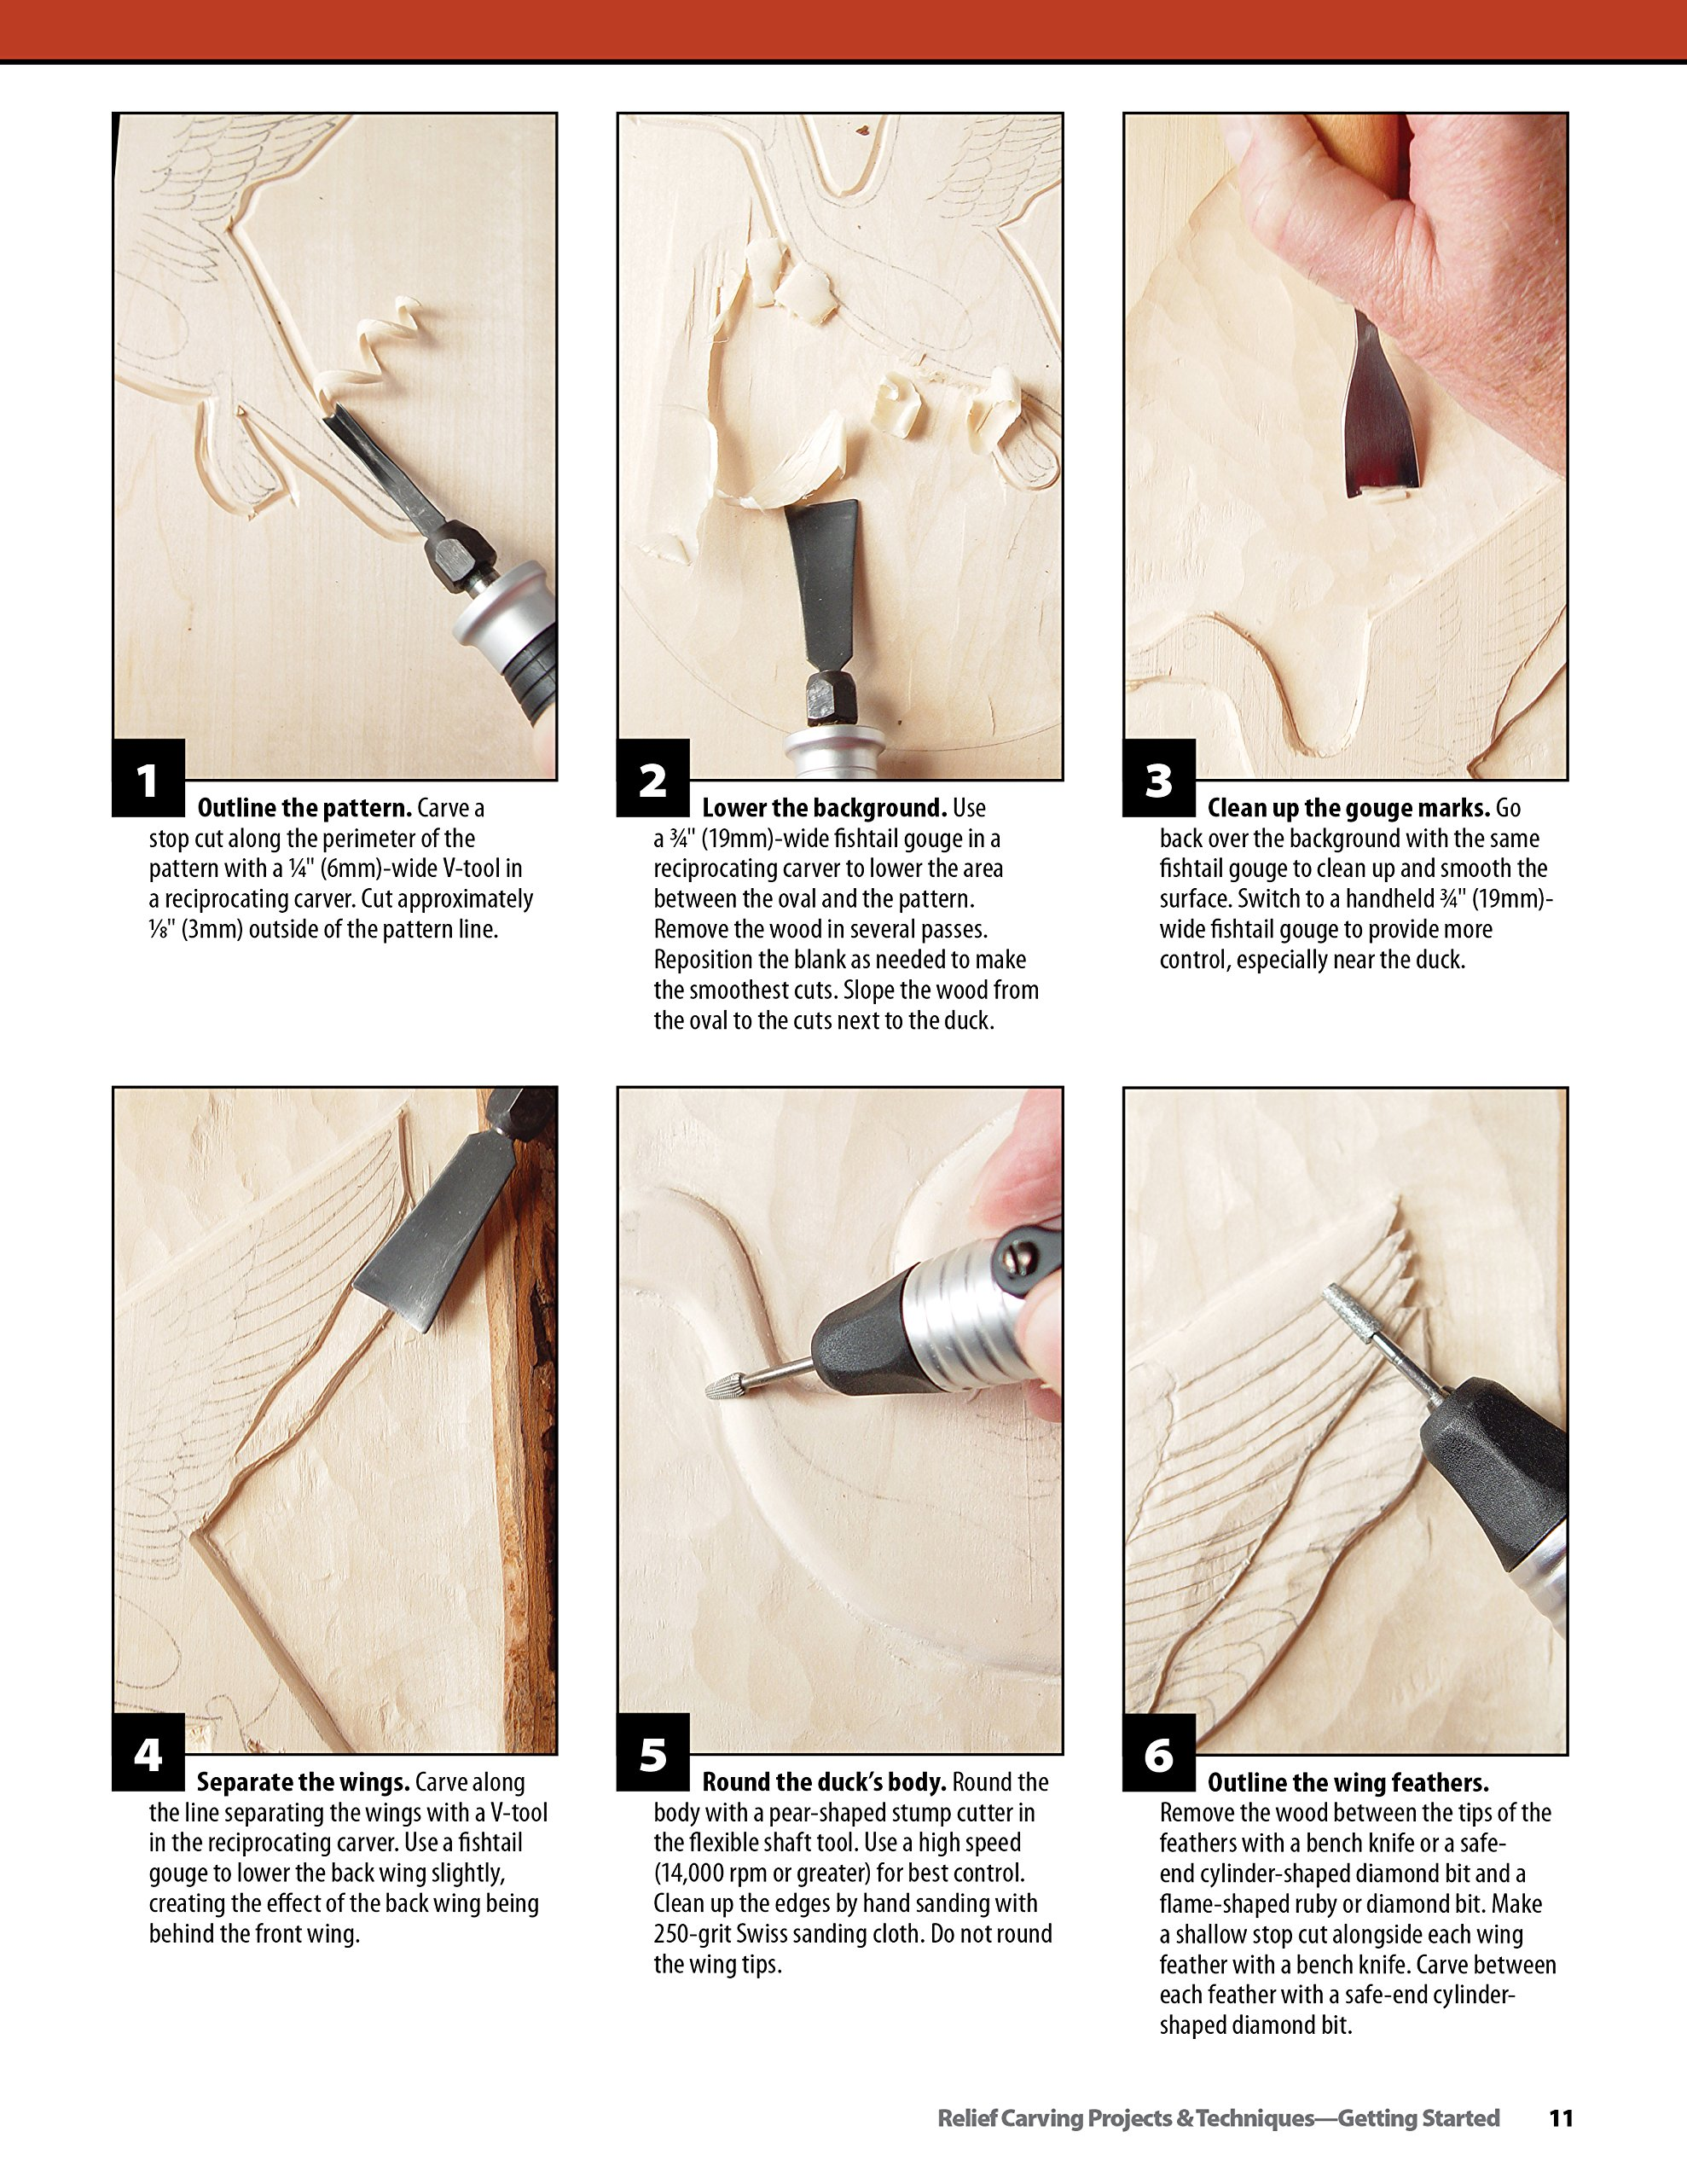 Relief Carving Projects & Techniques: Expert Advice and 37